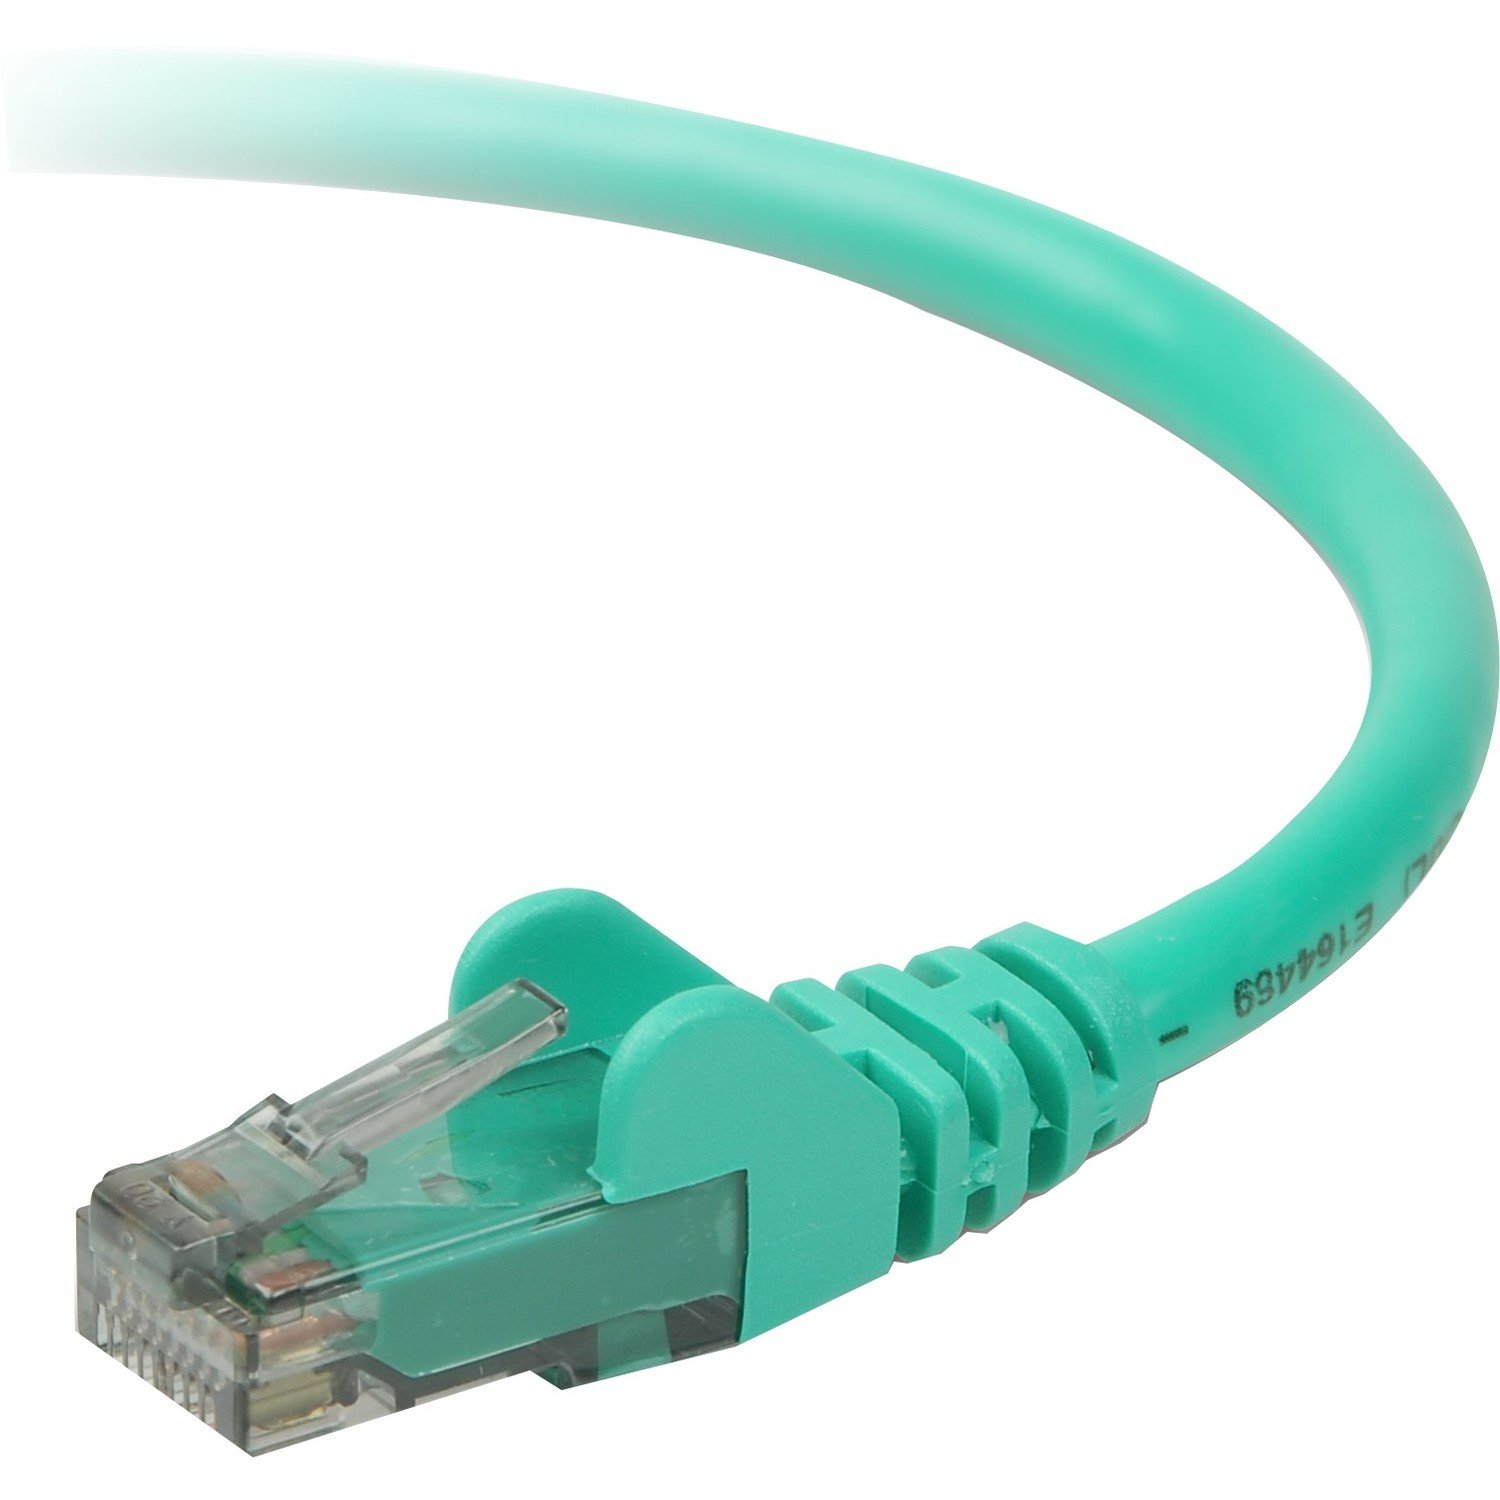 A3L980-20-GRN Green Belkin High Performance Patch cablecast 620